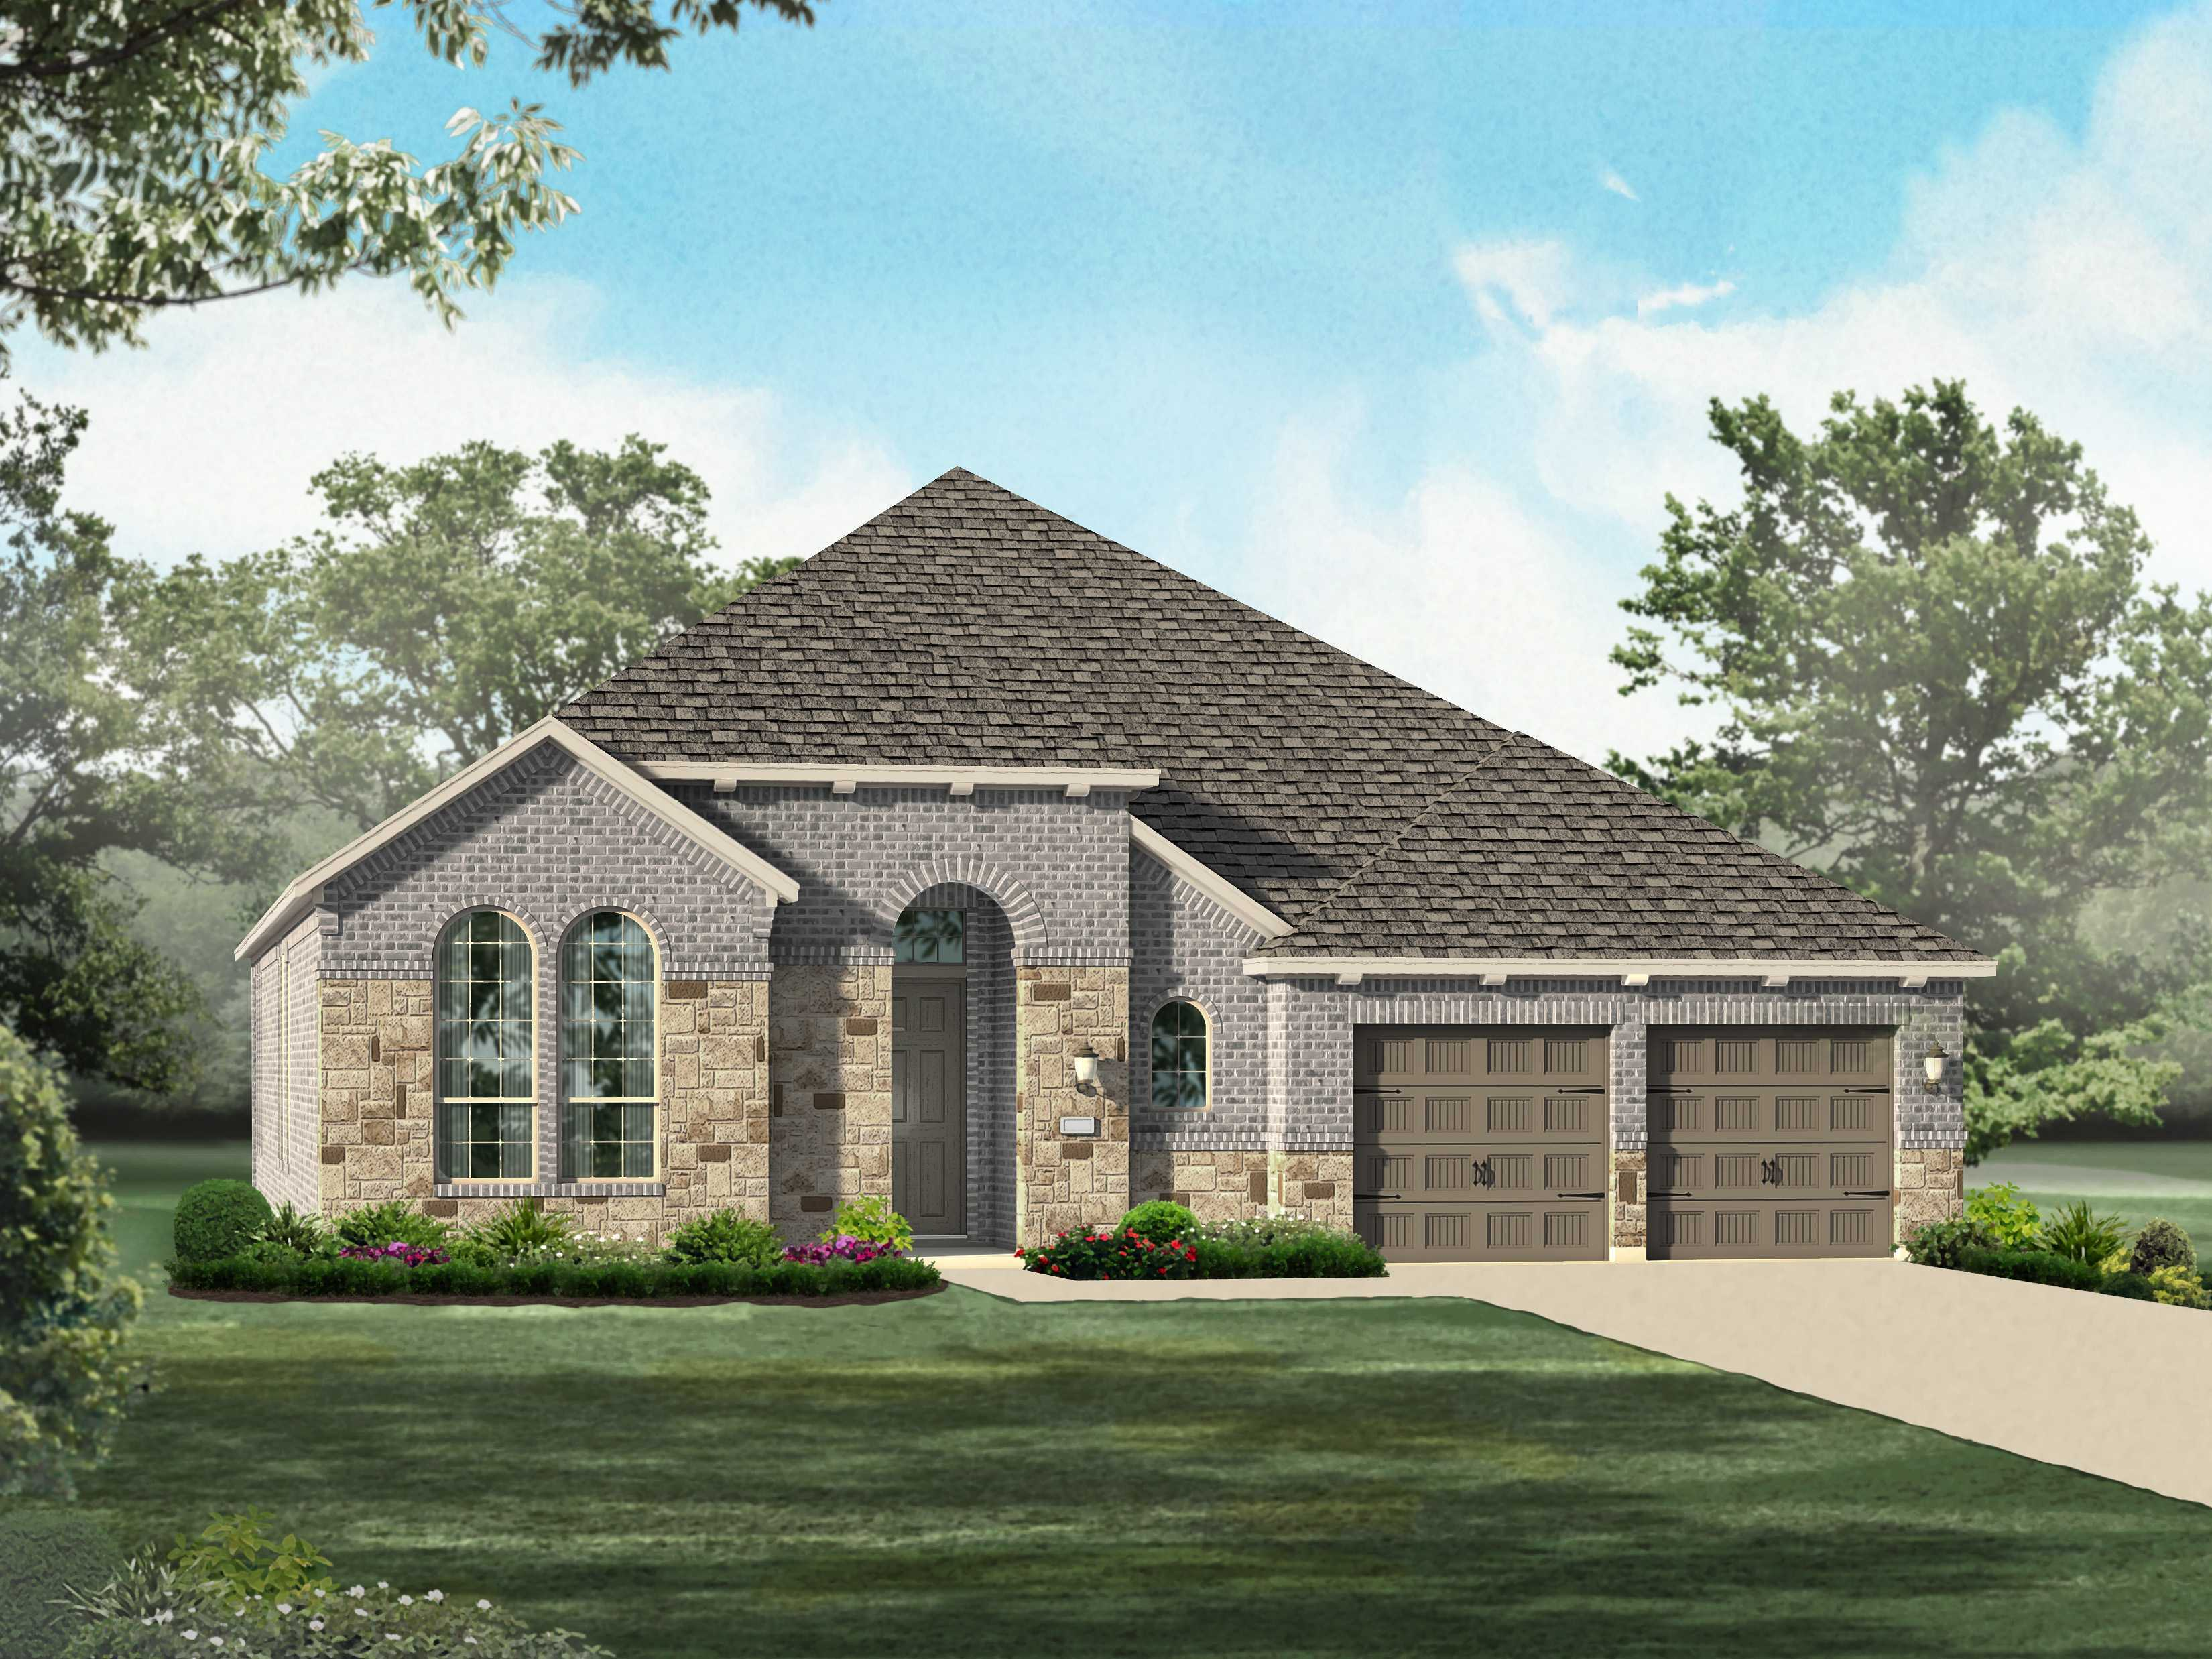 Single Family for Sale at Lakeside At Tessera On Lake Travis 80s - Plan 242 8012 Turning Leaf Circle Lago Vista, Texas 78645 United States